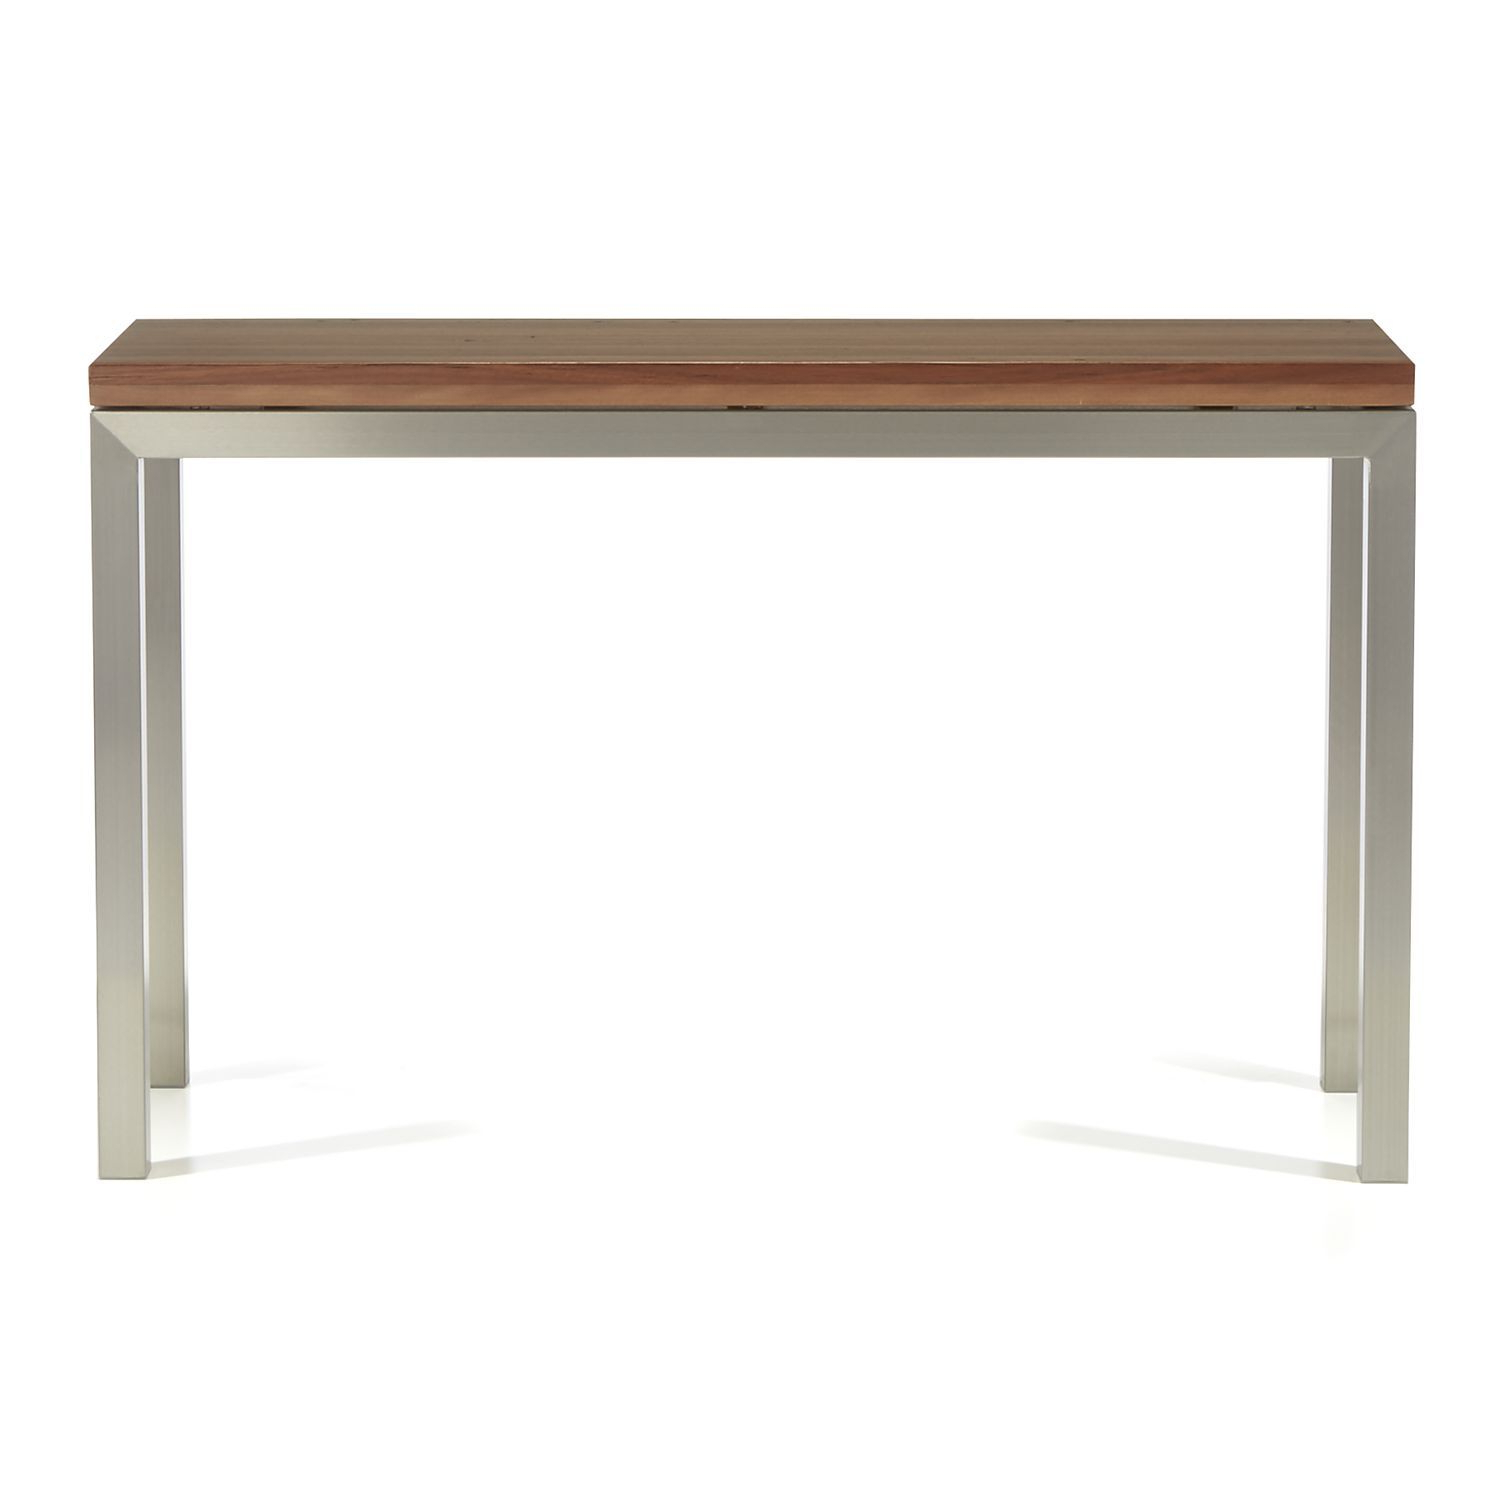 Parsons Reclaimed Wood Top/ Stainless Steel Base 48X16 Console With Regard To Parsons Concrete Top & Stainless Steel Base 48X16 Console Tables (View 4 of 20)